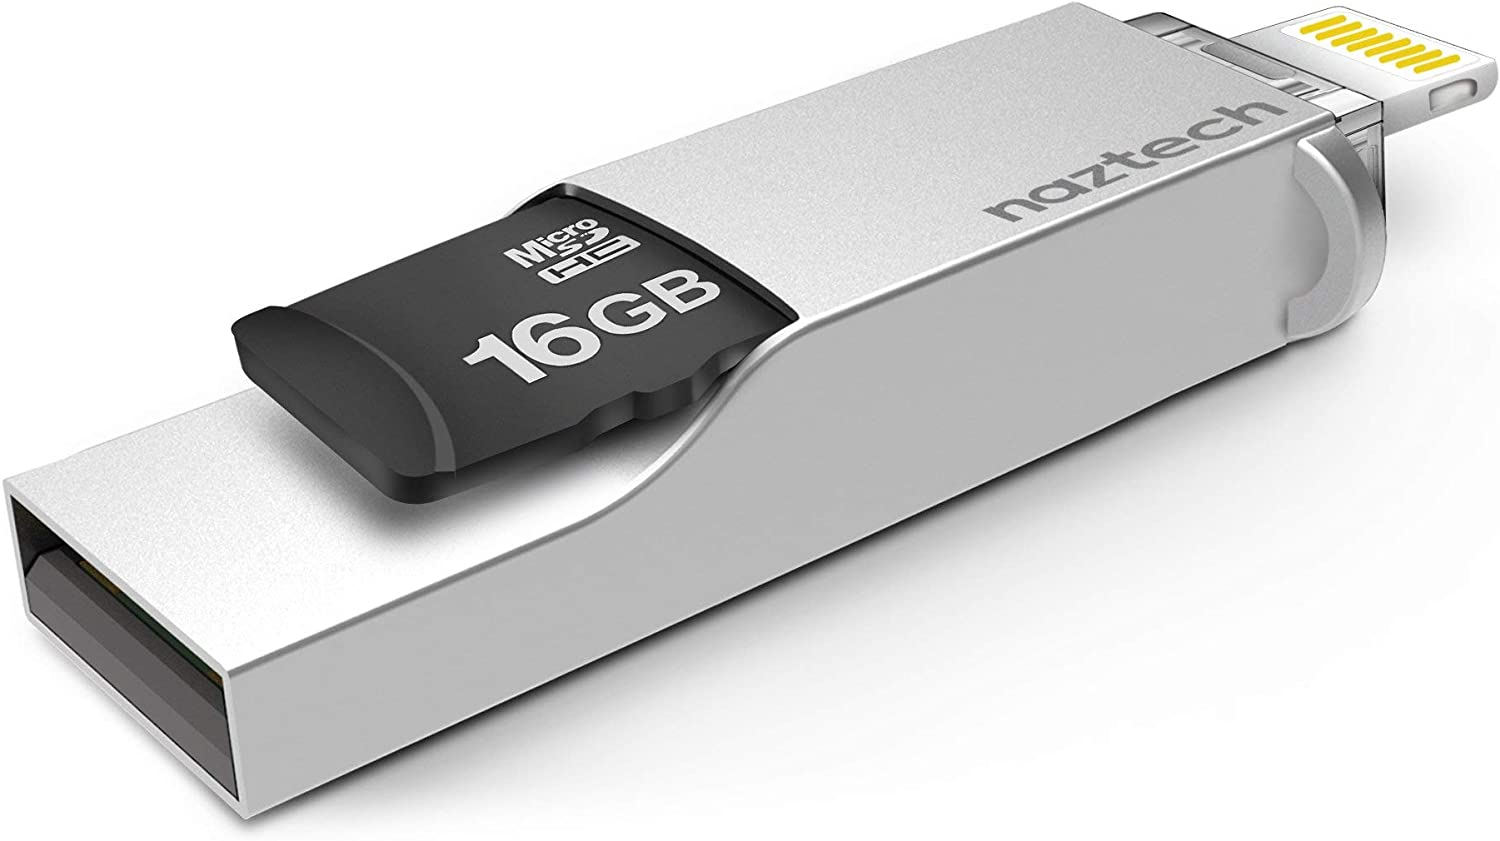 Naztech Xtra Mini USB Flash Drive Lightning Memory Stick with Hi-Speed Memory Expansion for Apple IOS, Micro SD card up to 16GB to 256GB Including iPhone, Mac, PC, iPad, iPod and More